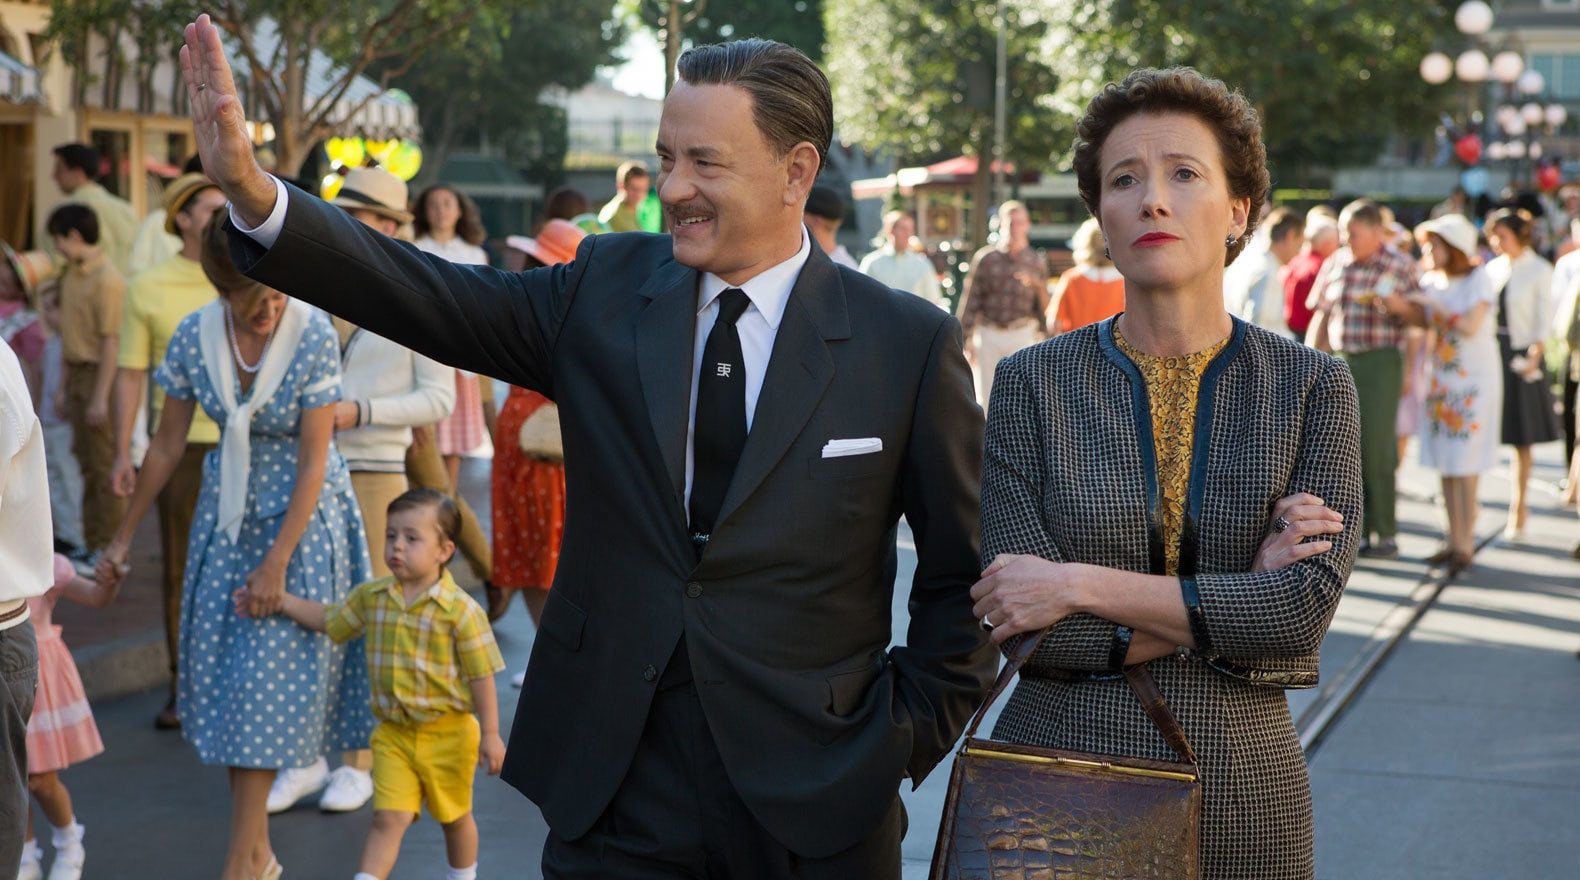 """Actors Tom Hanks (as Walt Disney) and Emma Thompson (as P.L. Travers) in the movie """"Saving Mr. Banks""""."""